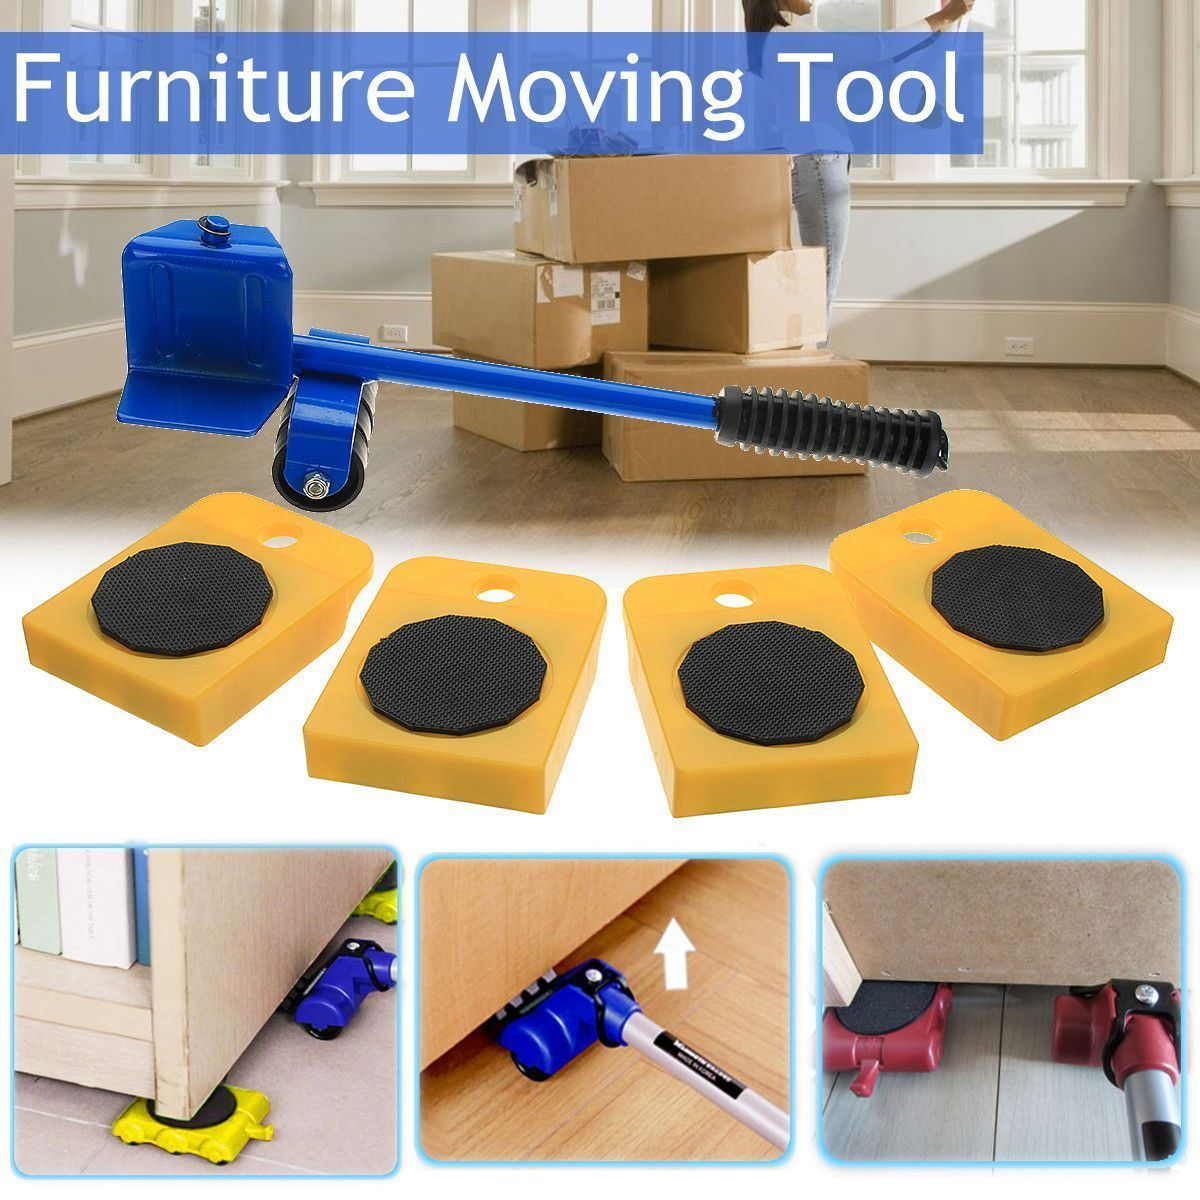 Furniture Lifter Mover Set